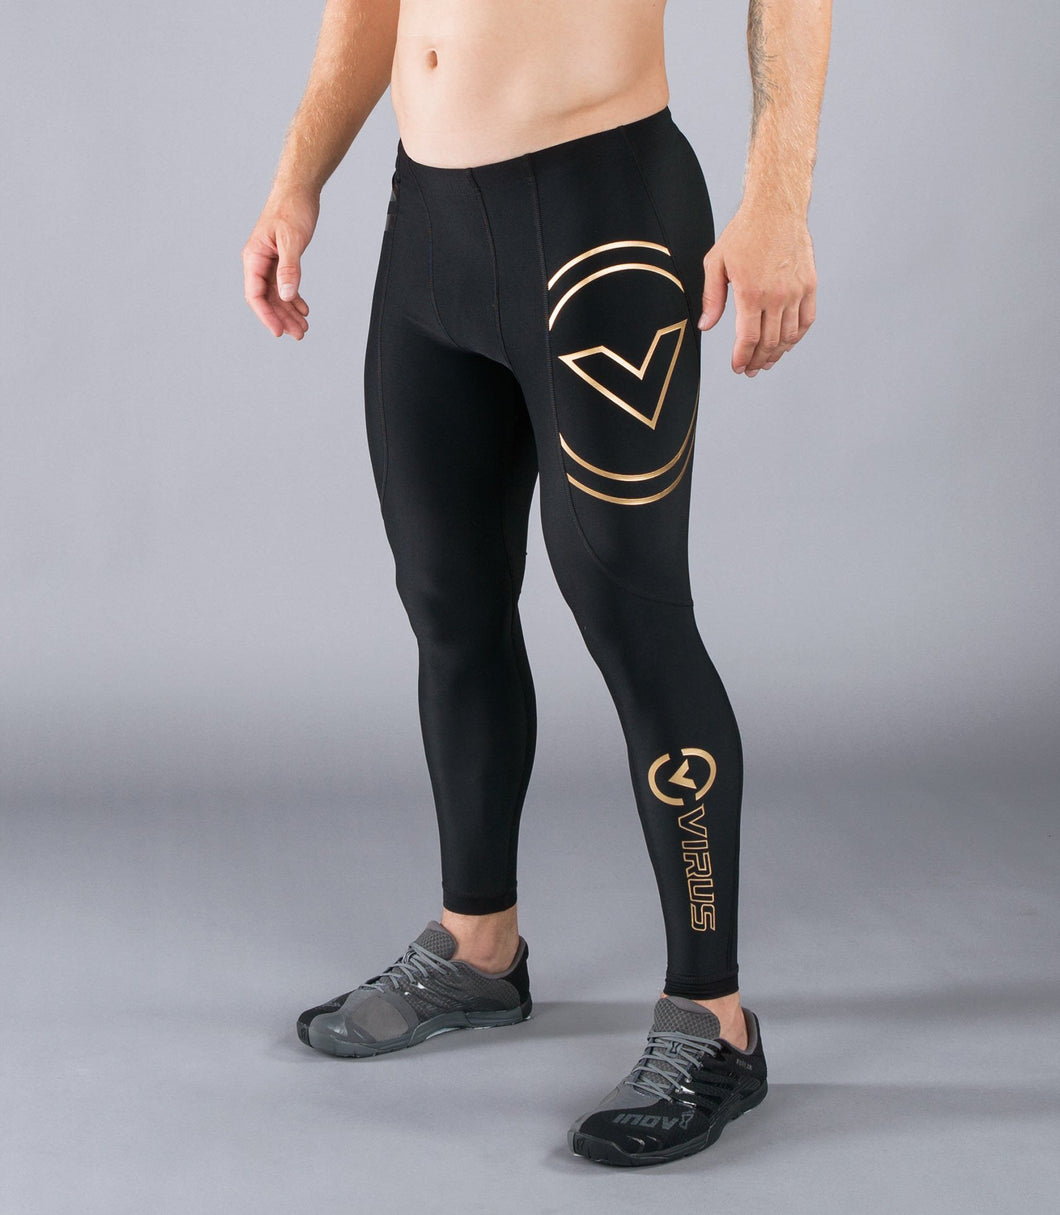 Au9 | BioCeramic™ V2 Compression Pants | Black/Gold